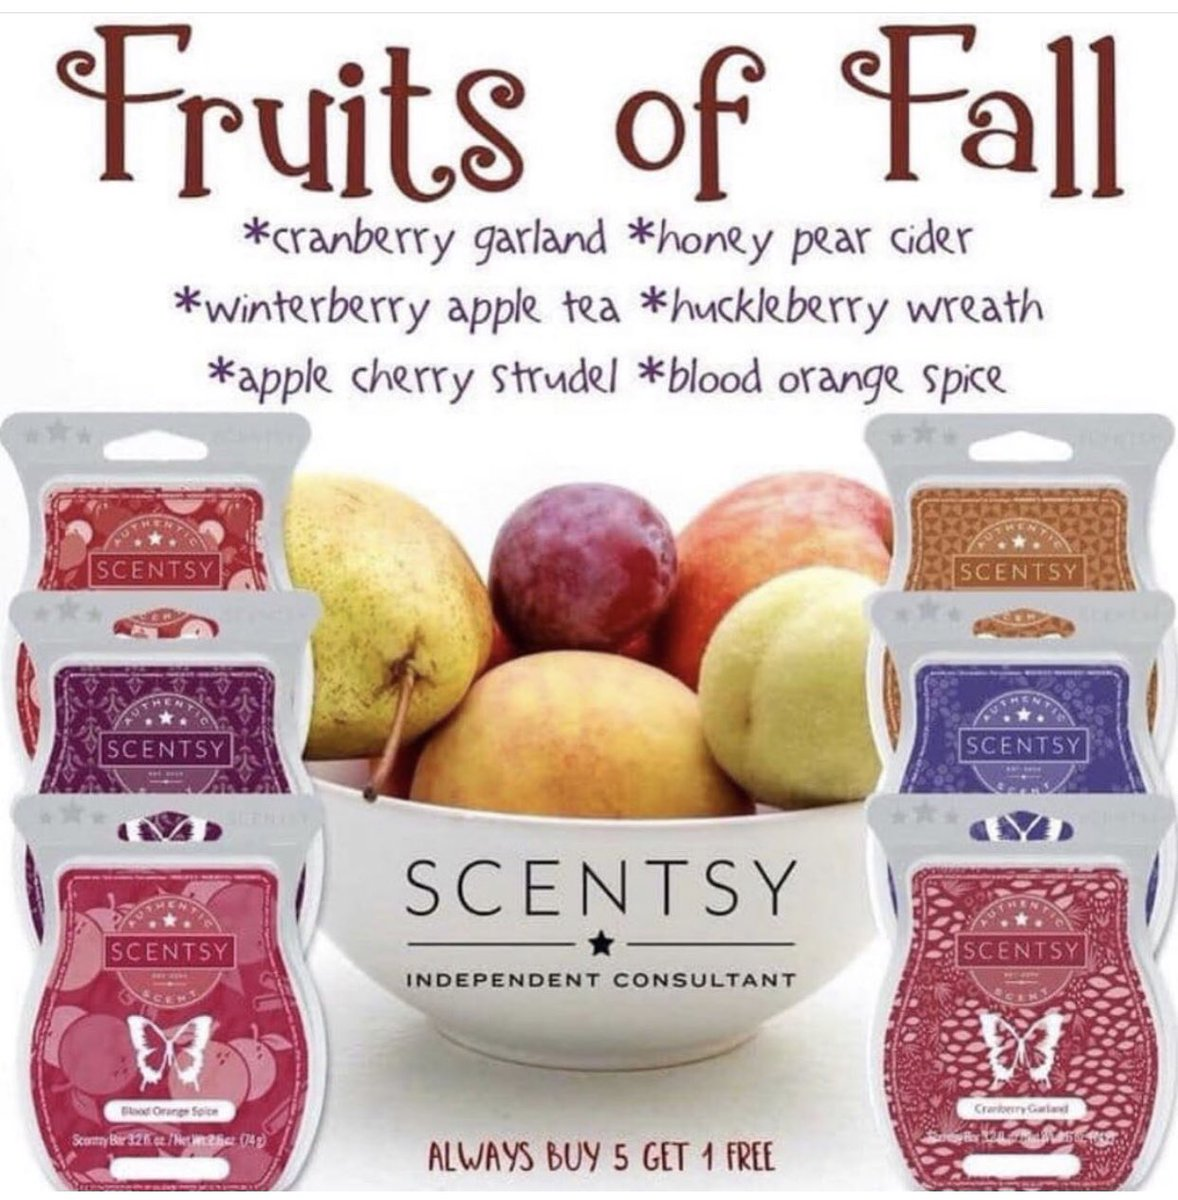 Mariela S Scentsy Wax Store On Twitter Fruits Of Fall Come Shop All Our Fall Scents On My Website Also Our Bars Are Buy 5 Get 1 Free Https T Co Wh2y68kg40 Cranberrygarland Honeypearcider Winterberryappletea Huckleberryweather